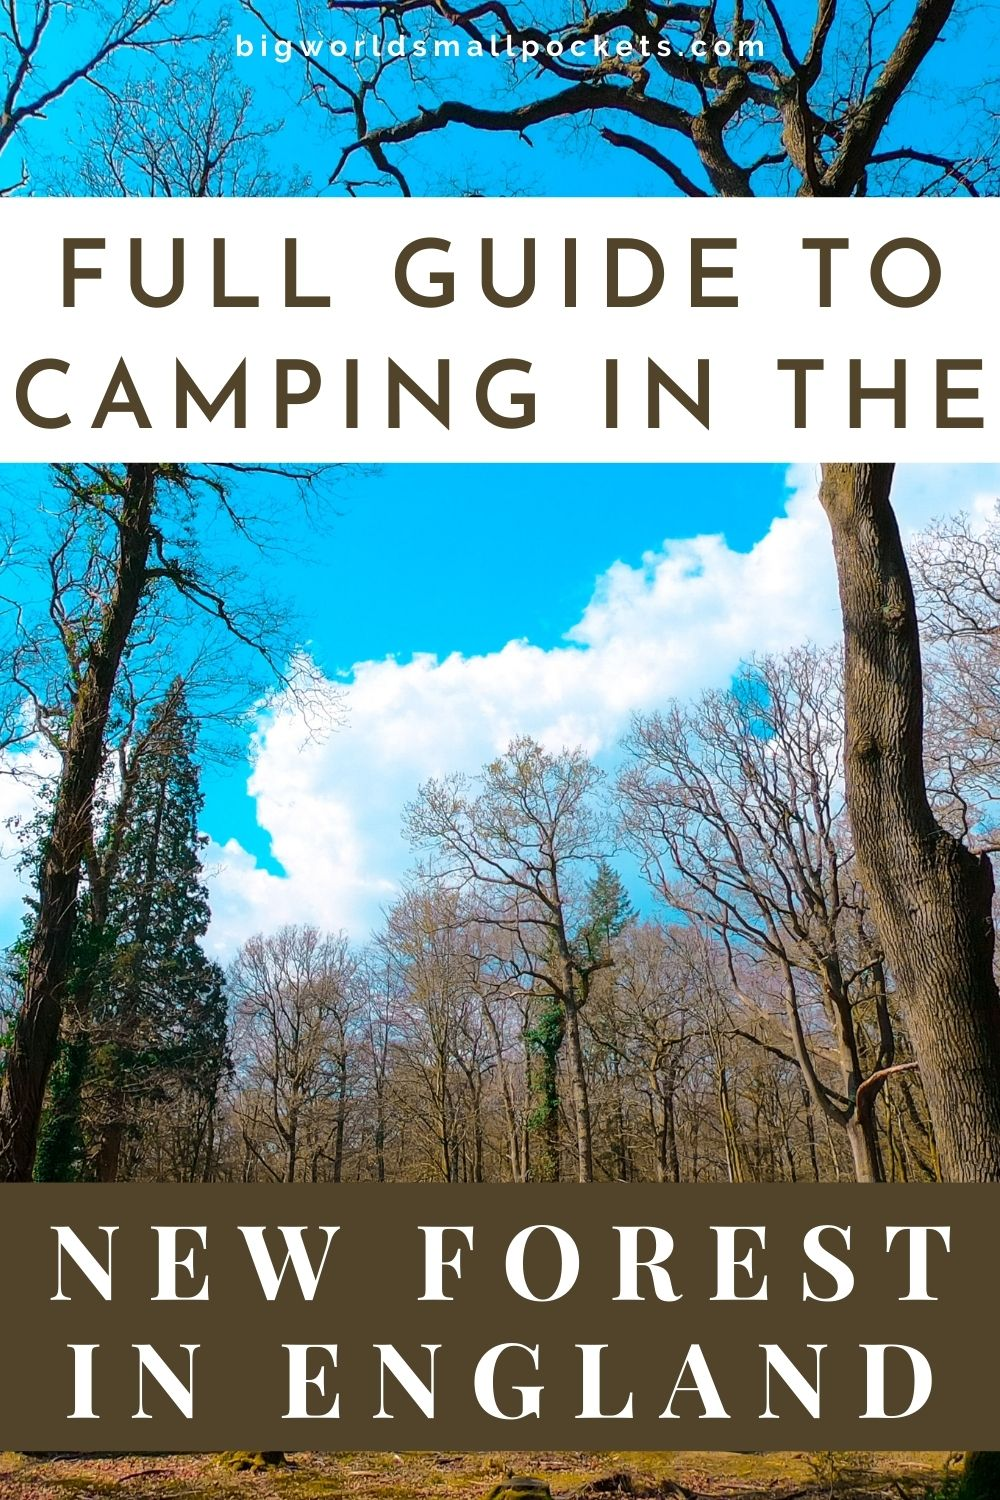 Full Guide to Camping in England's New Forest National Park